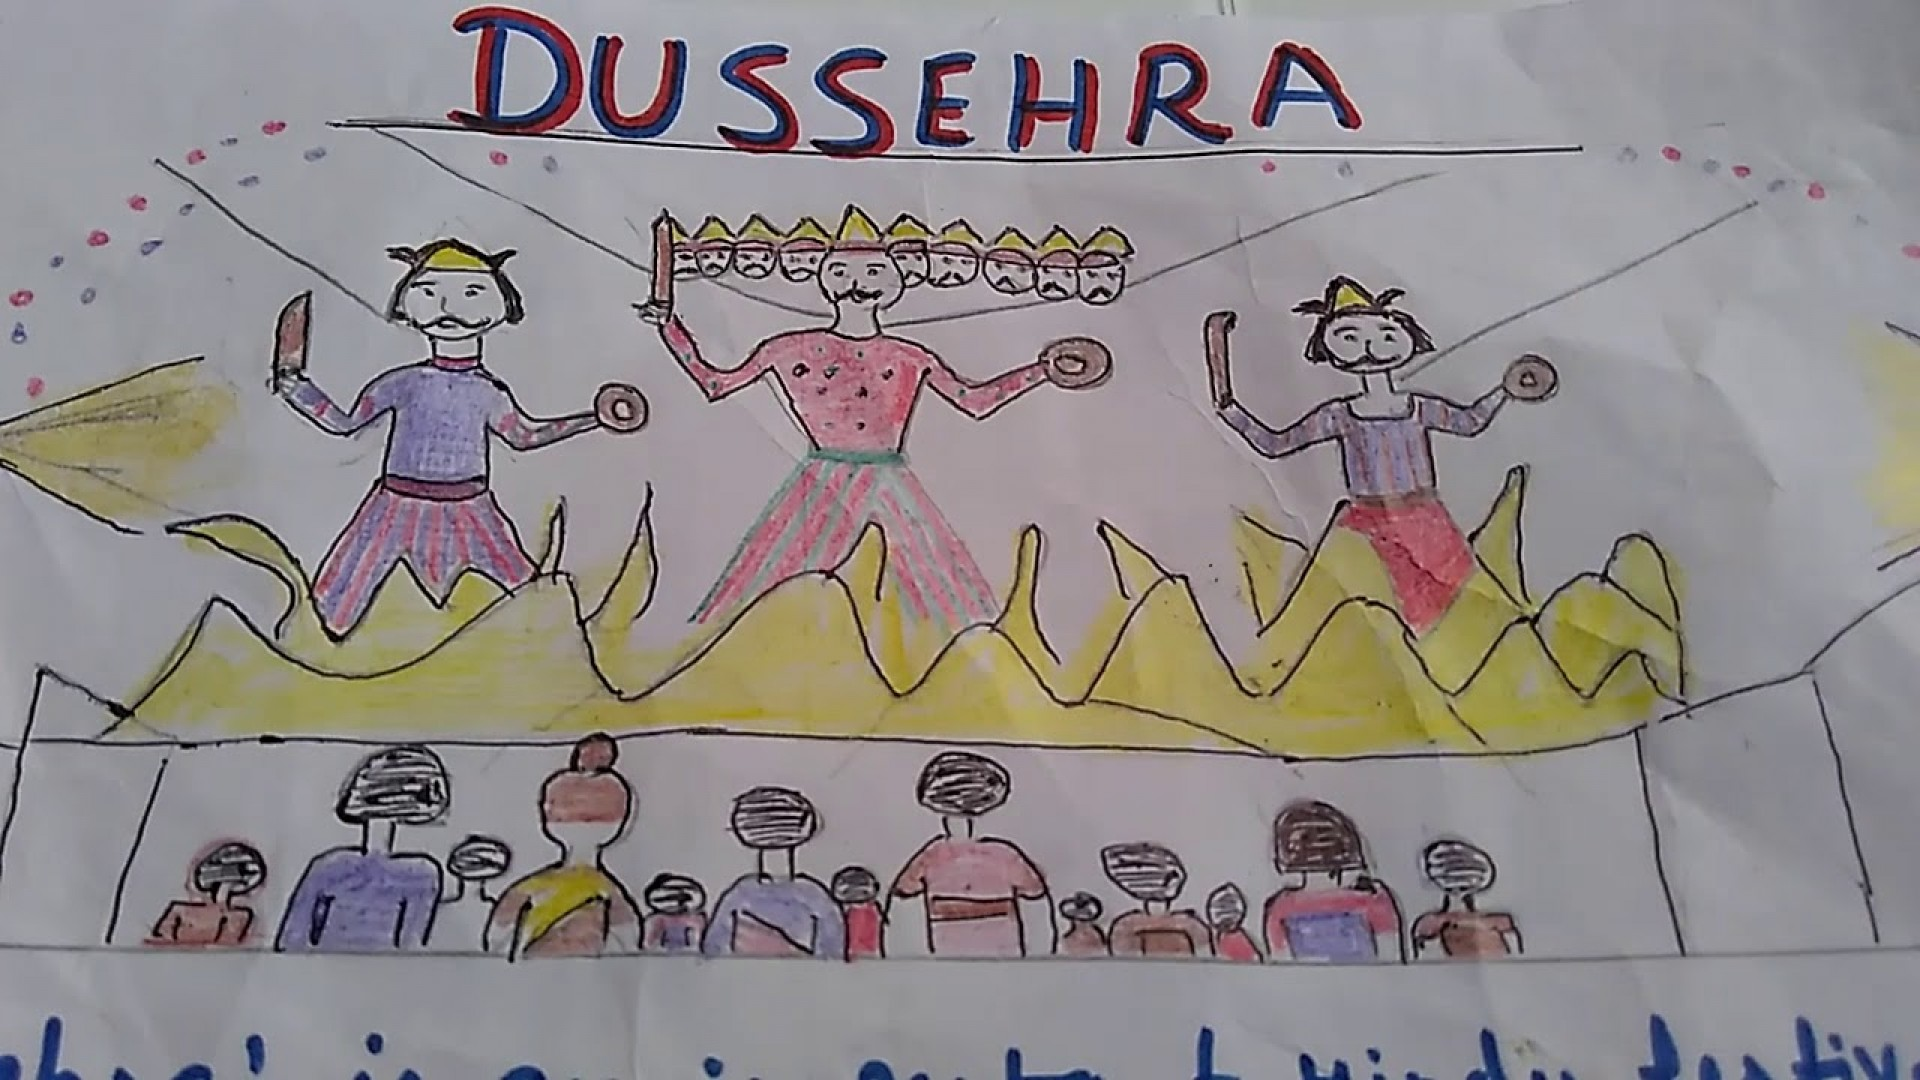 006 Maxresdefault Essay On Dussehra Festival In English Surprising 1920